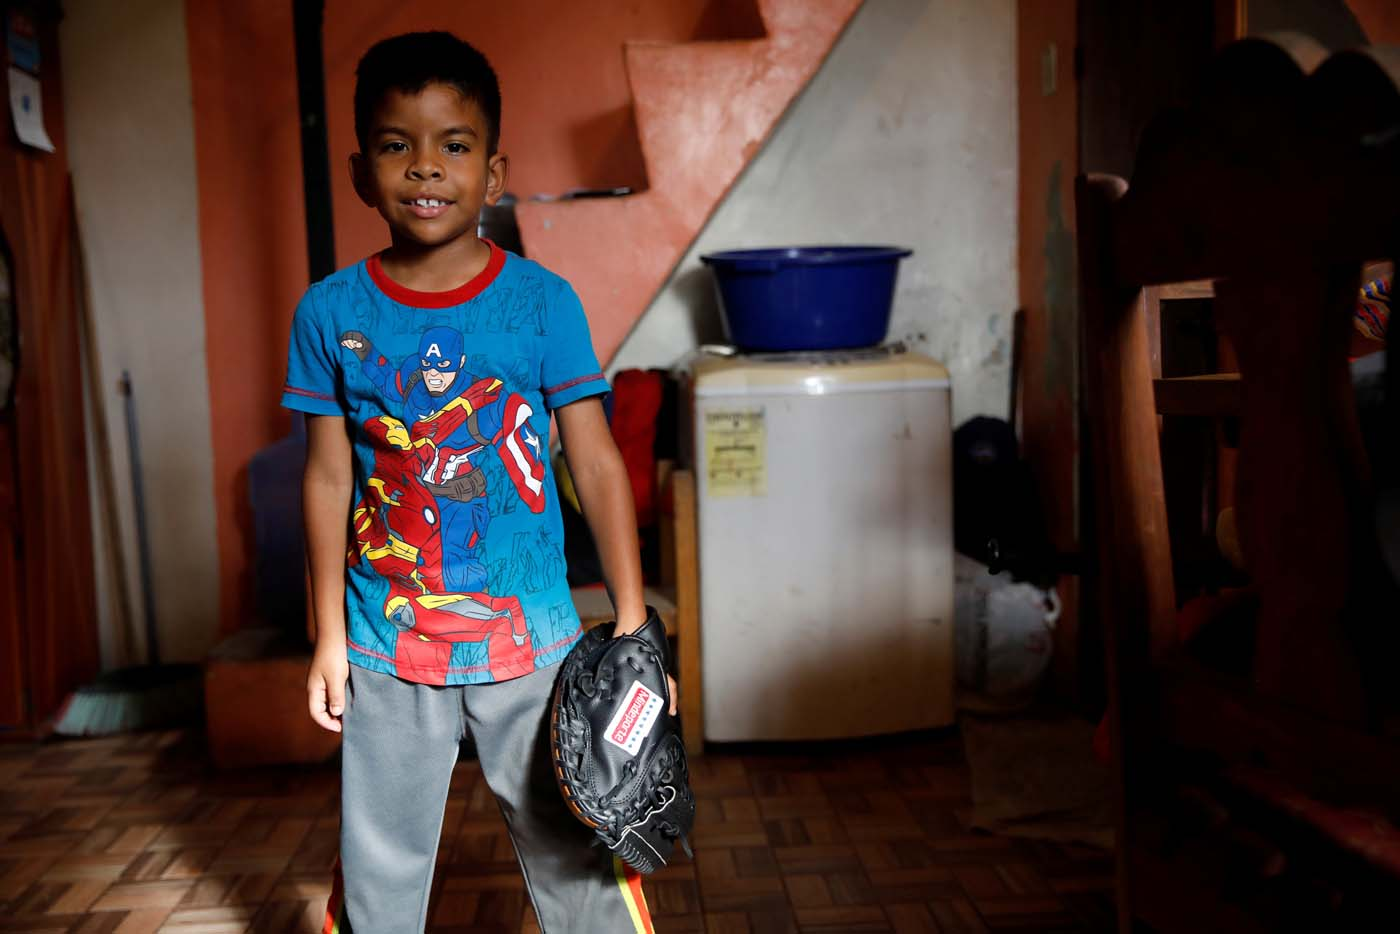 Jesus Cordova (7), poses for a picture in his house in Caracas, Venezuela August 29, 2017. Picture taken August 29, 2017. REUTERS/Carlos Garcia Rawlins